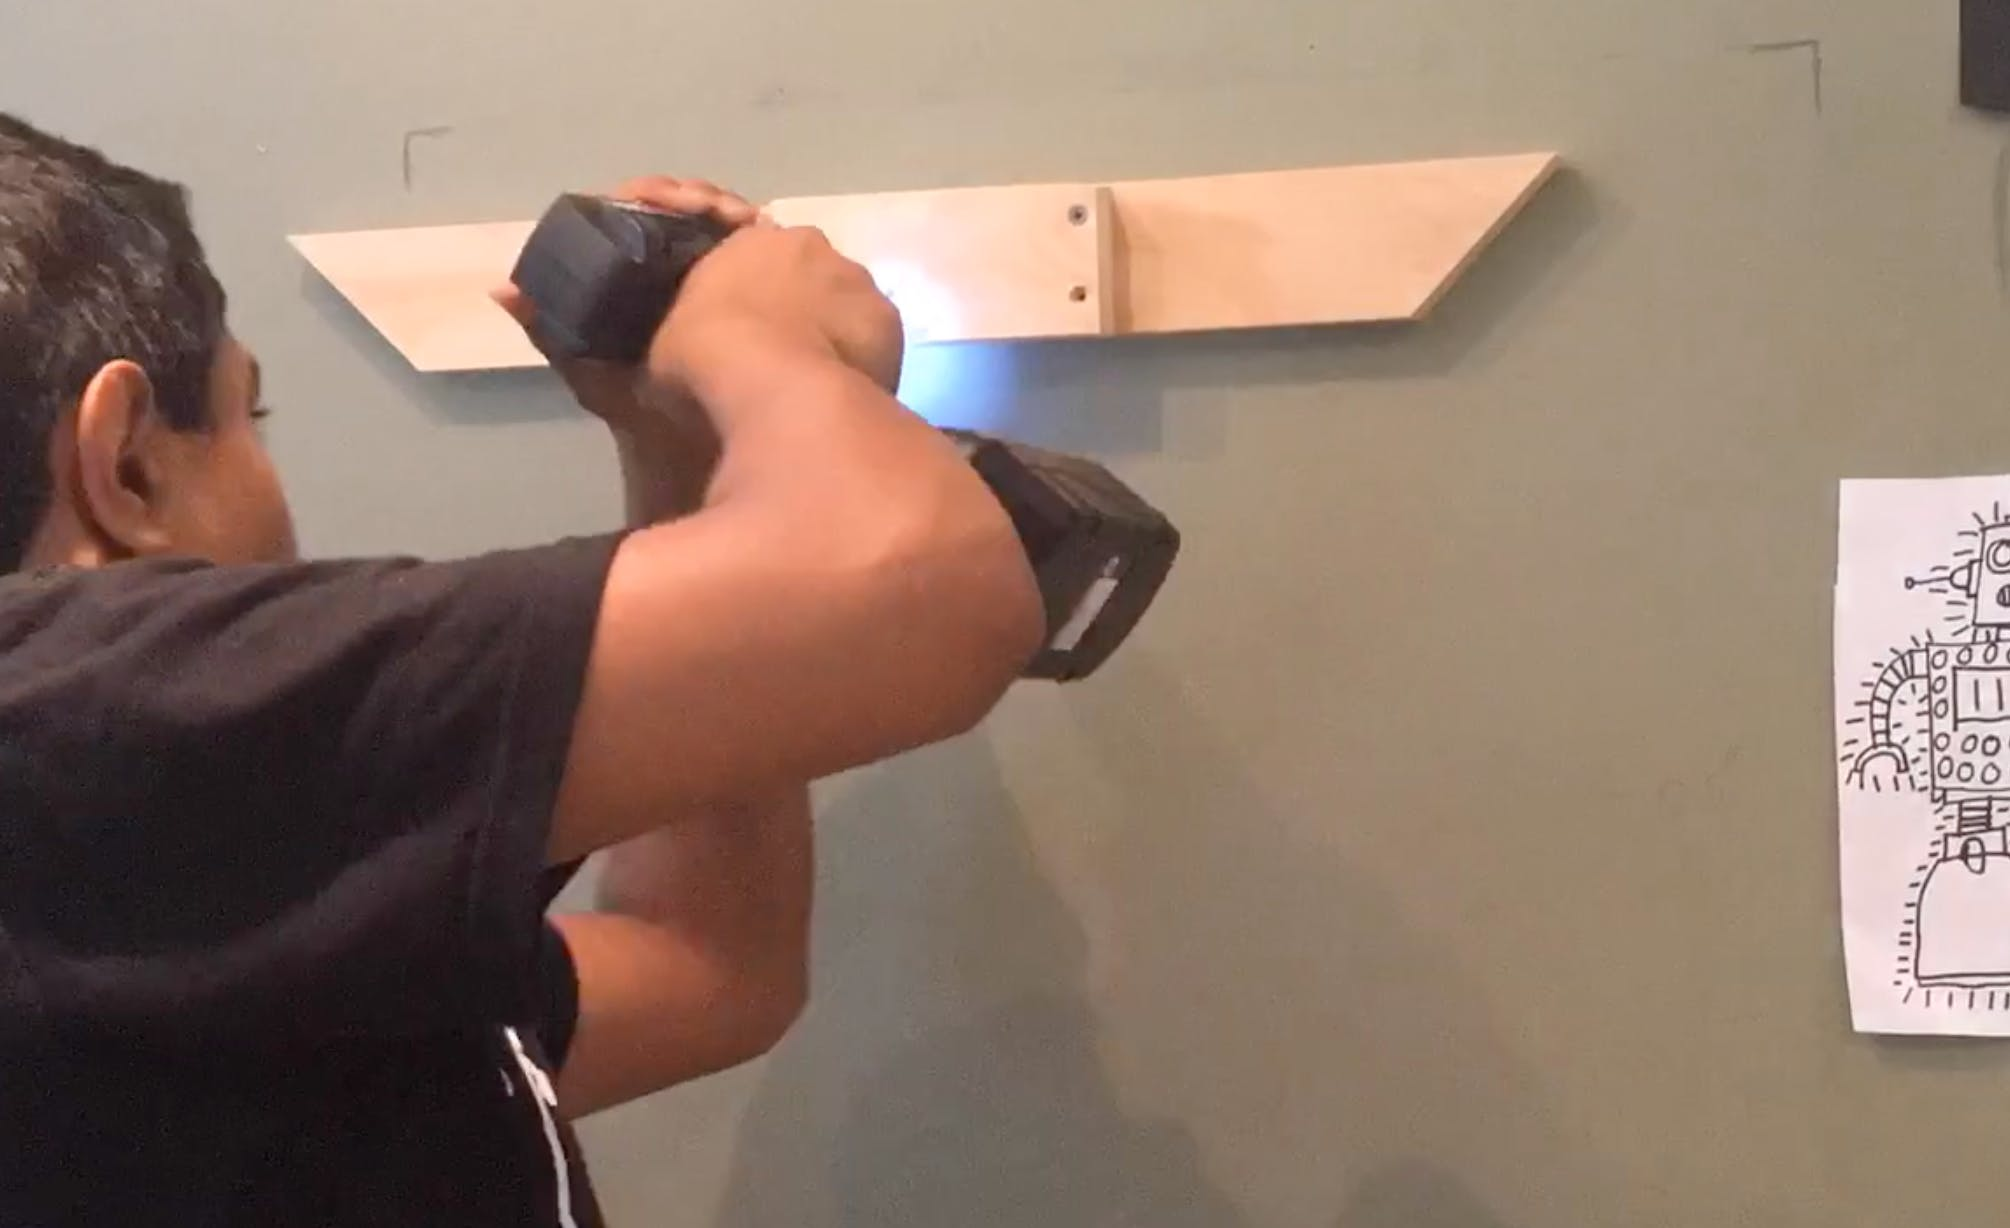 mounting the cleat on the wall